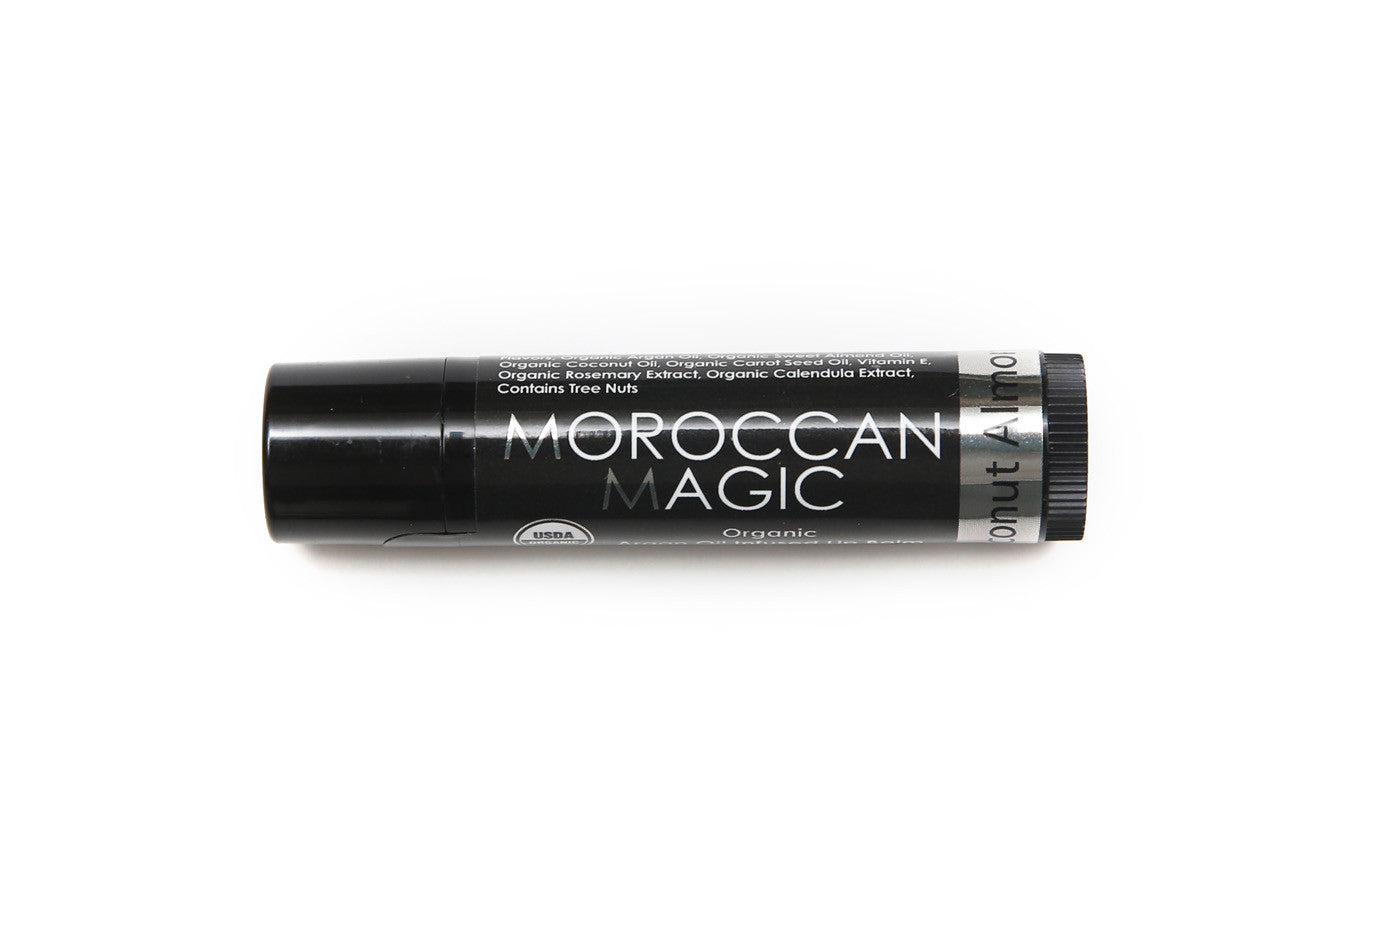 ONE MOROCCAN MAGIC<br>ORGANIC LIP BALM<br>(for the sake of your drip tips)